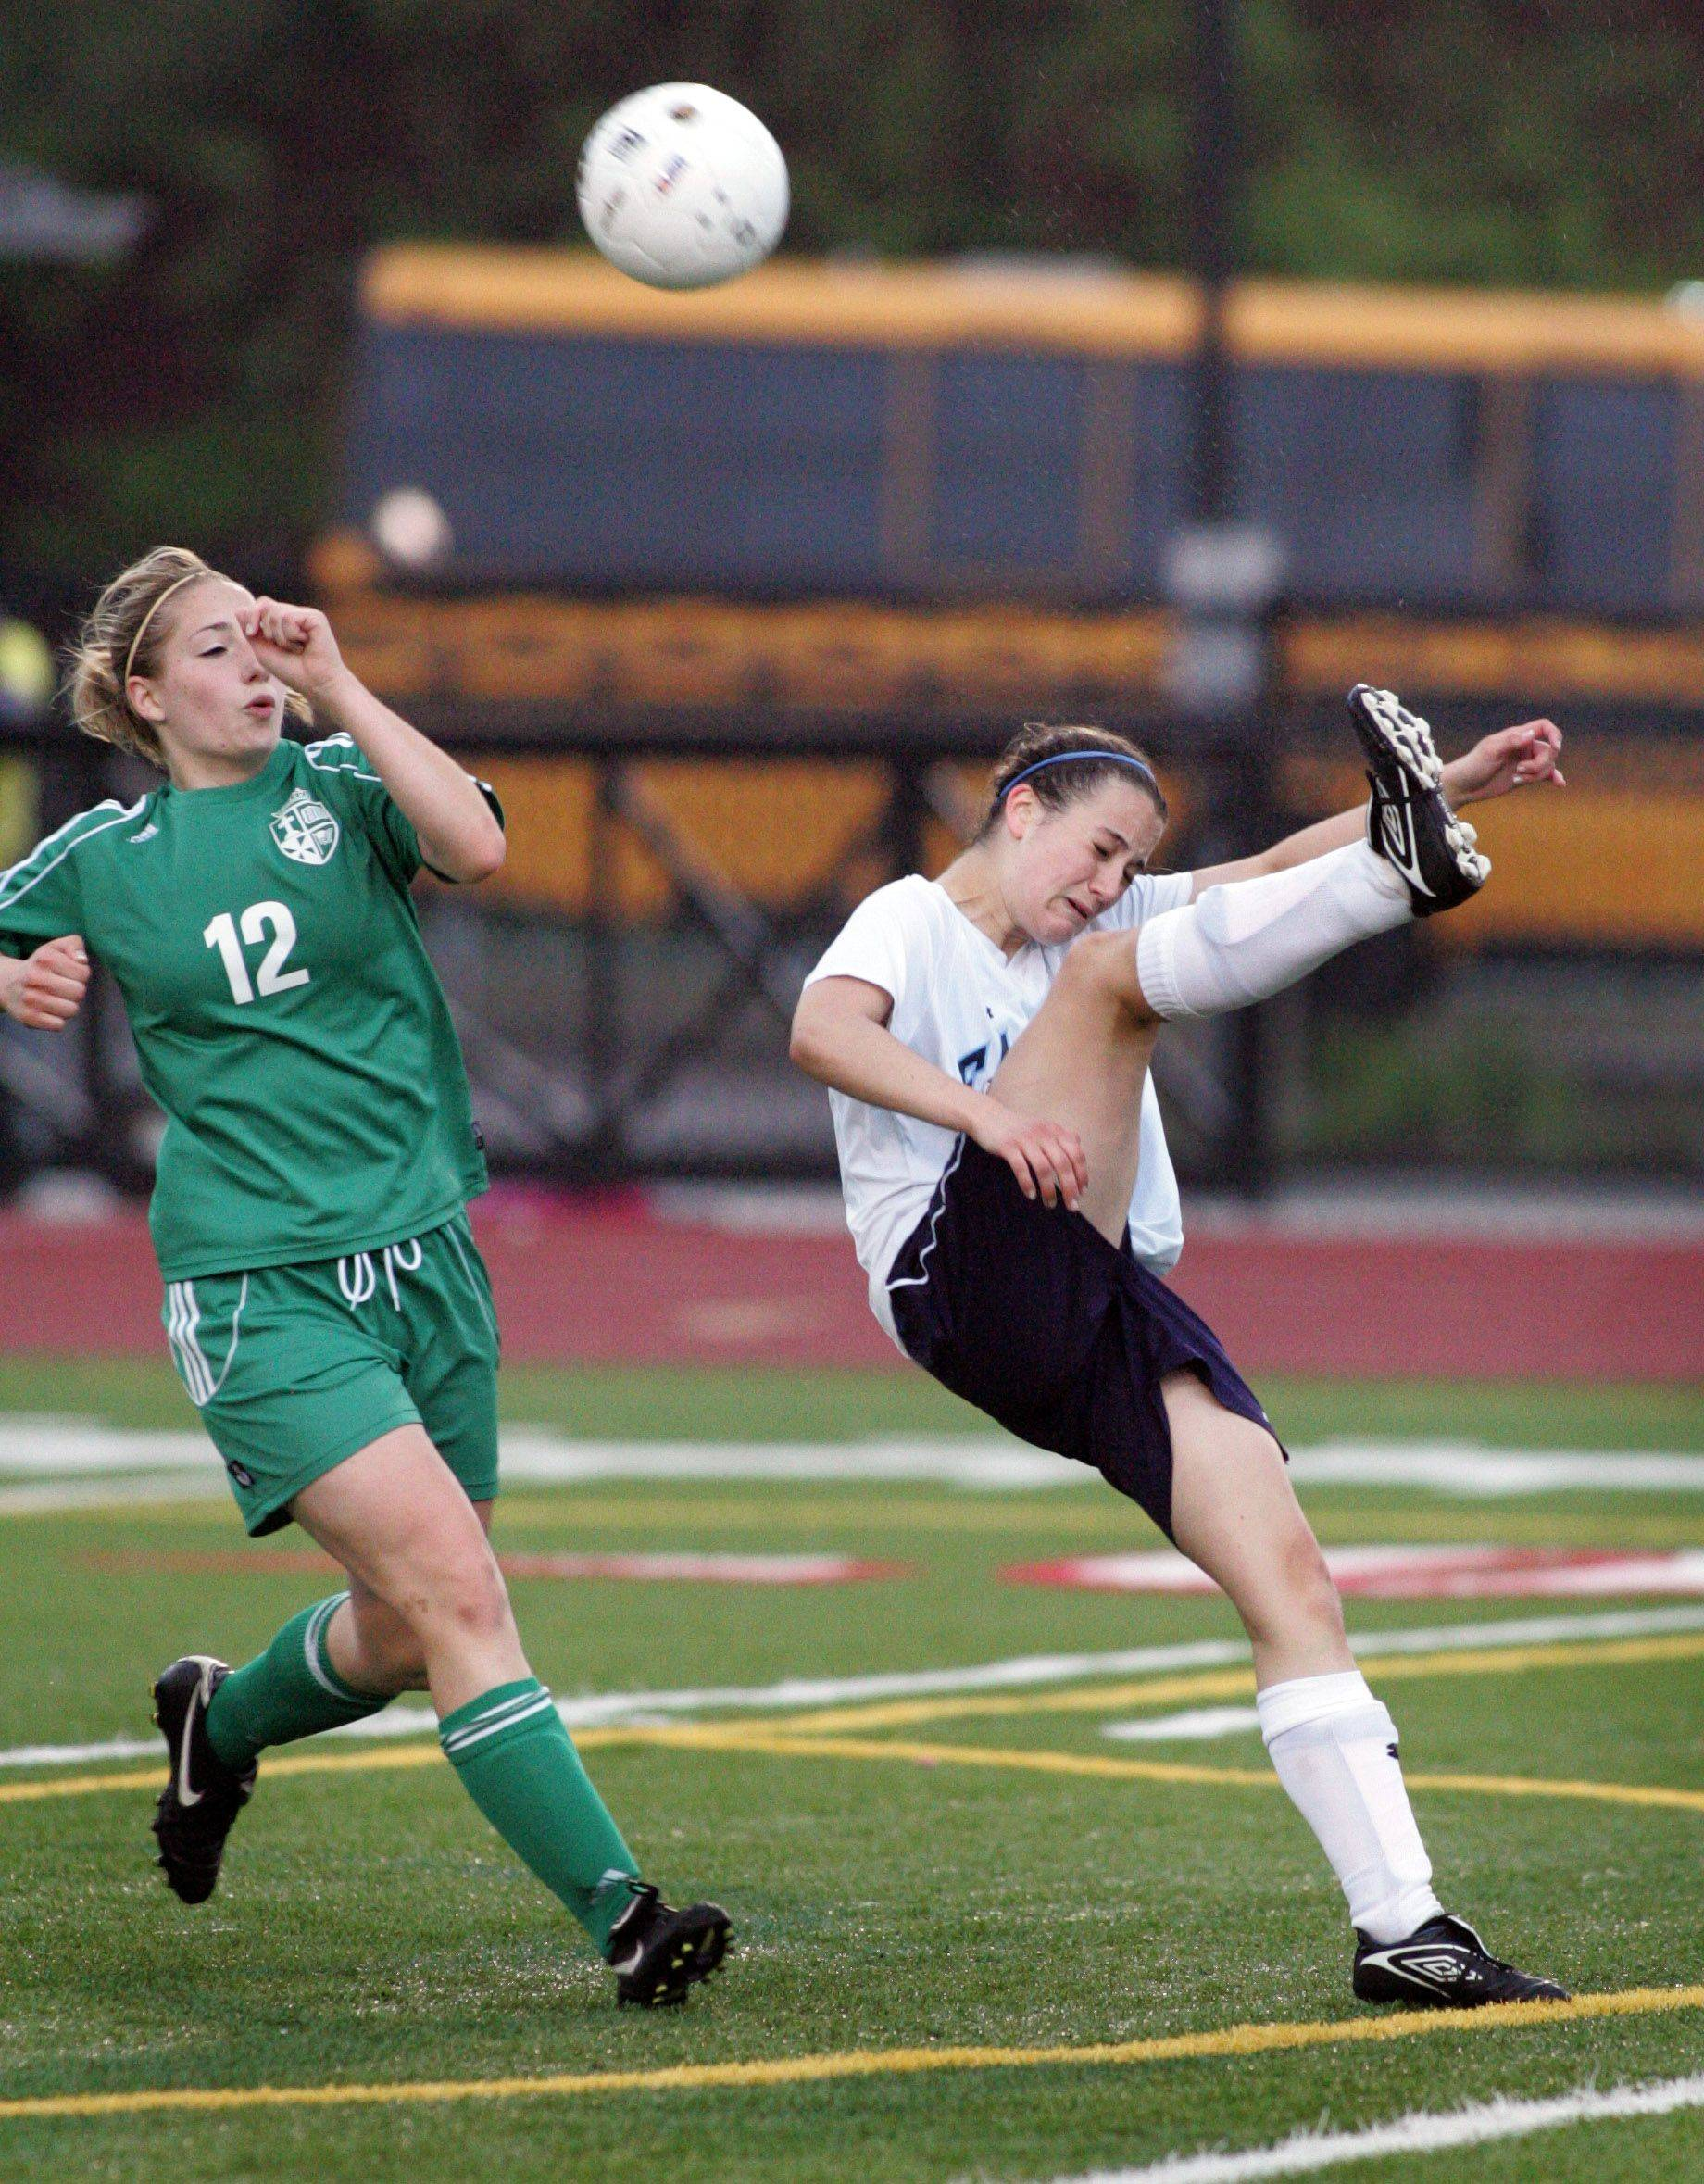 Vincenza Ranallo of St. Edward, left, moves in as Keelin McNally of Willows Academy kicks the ball back during Class 1A state soccer third place match in Naperville on Saturday.